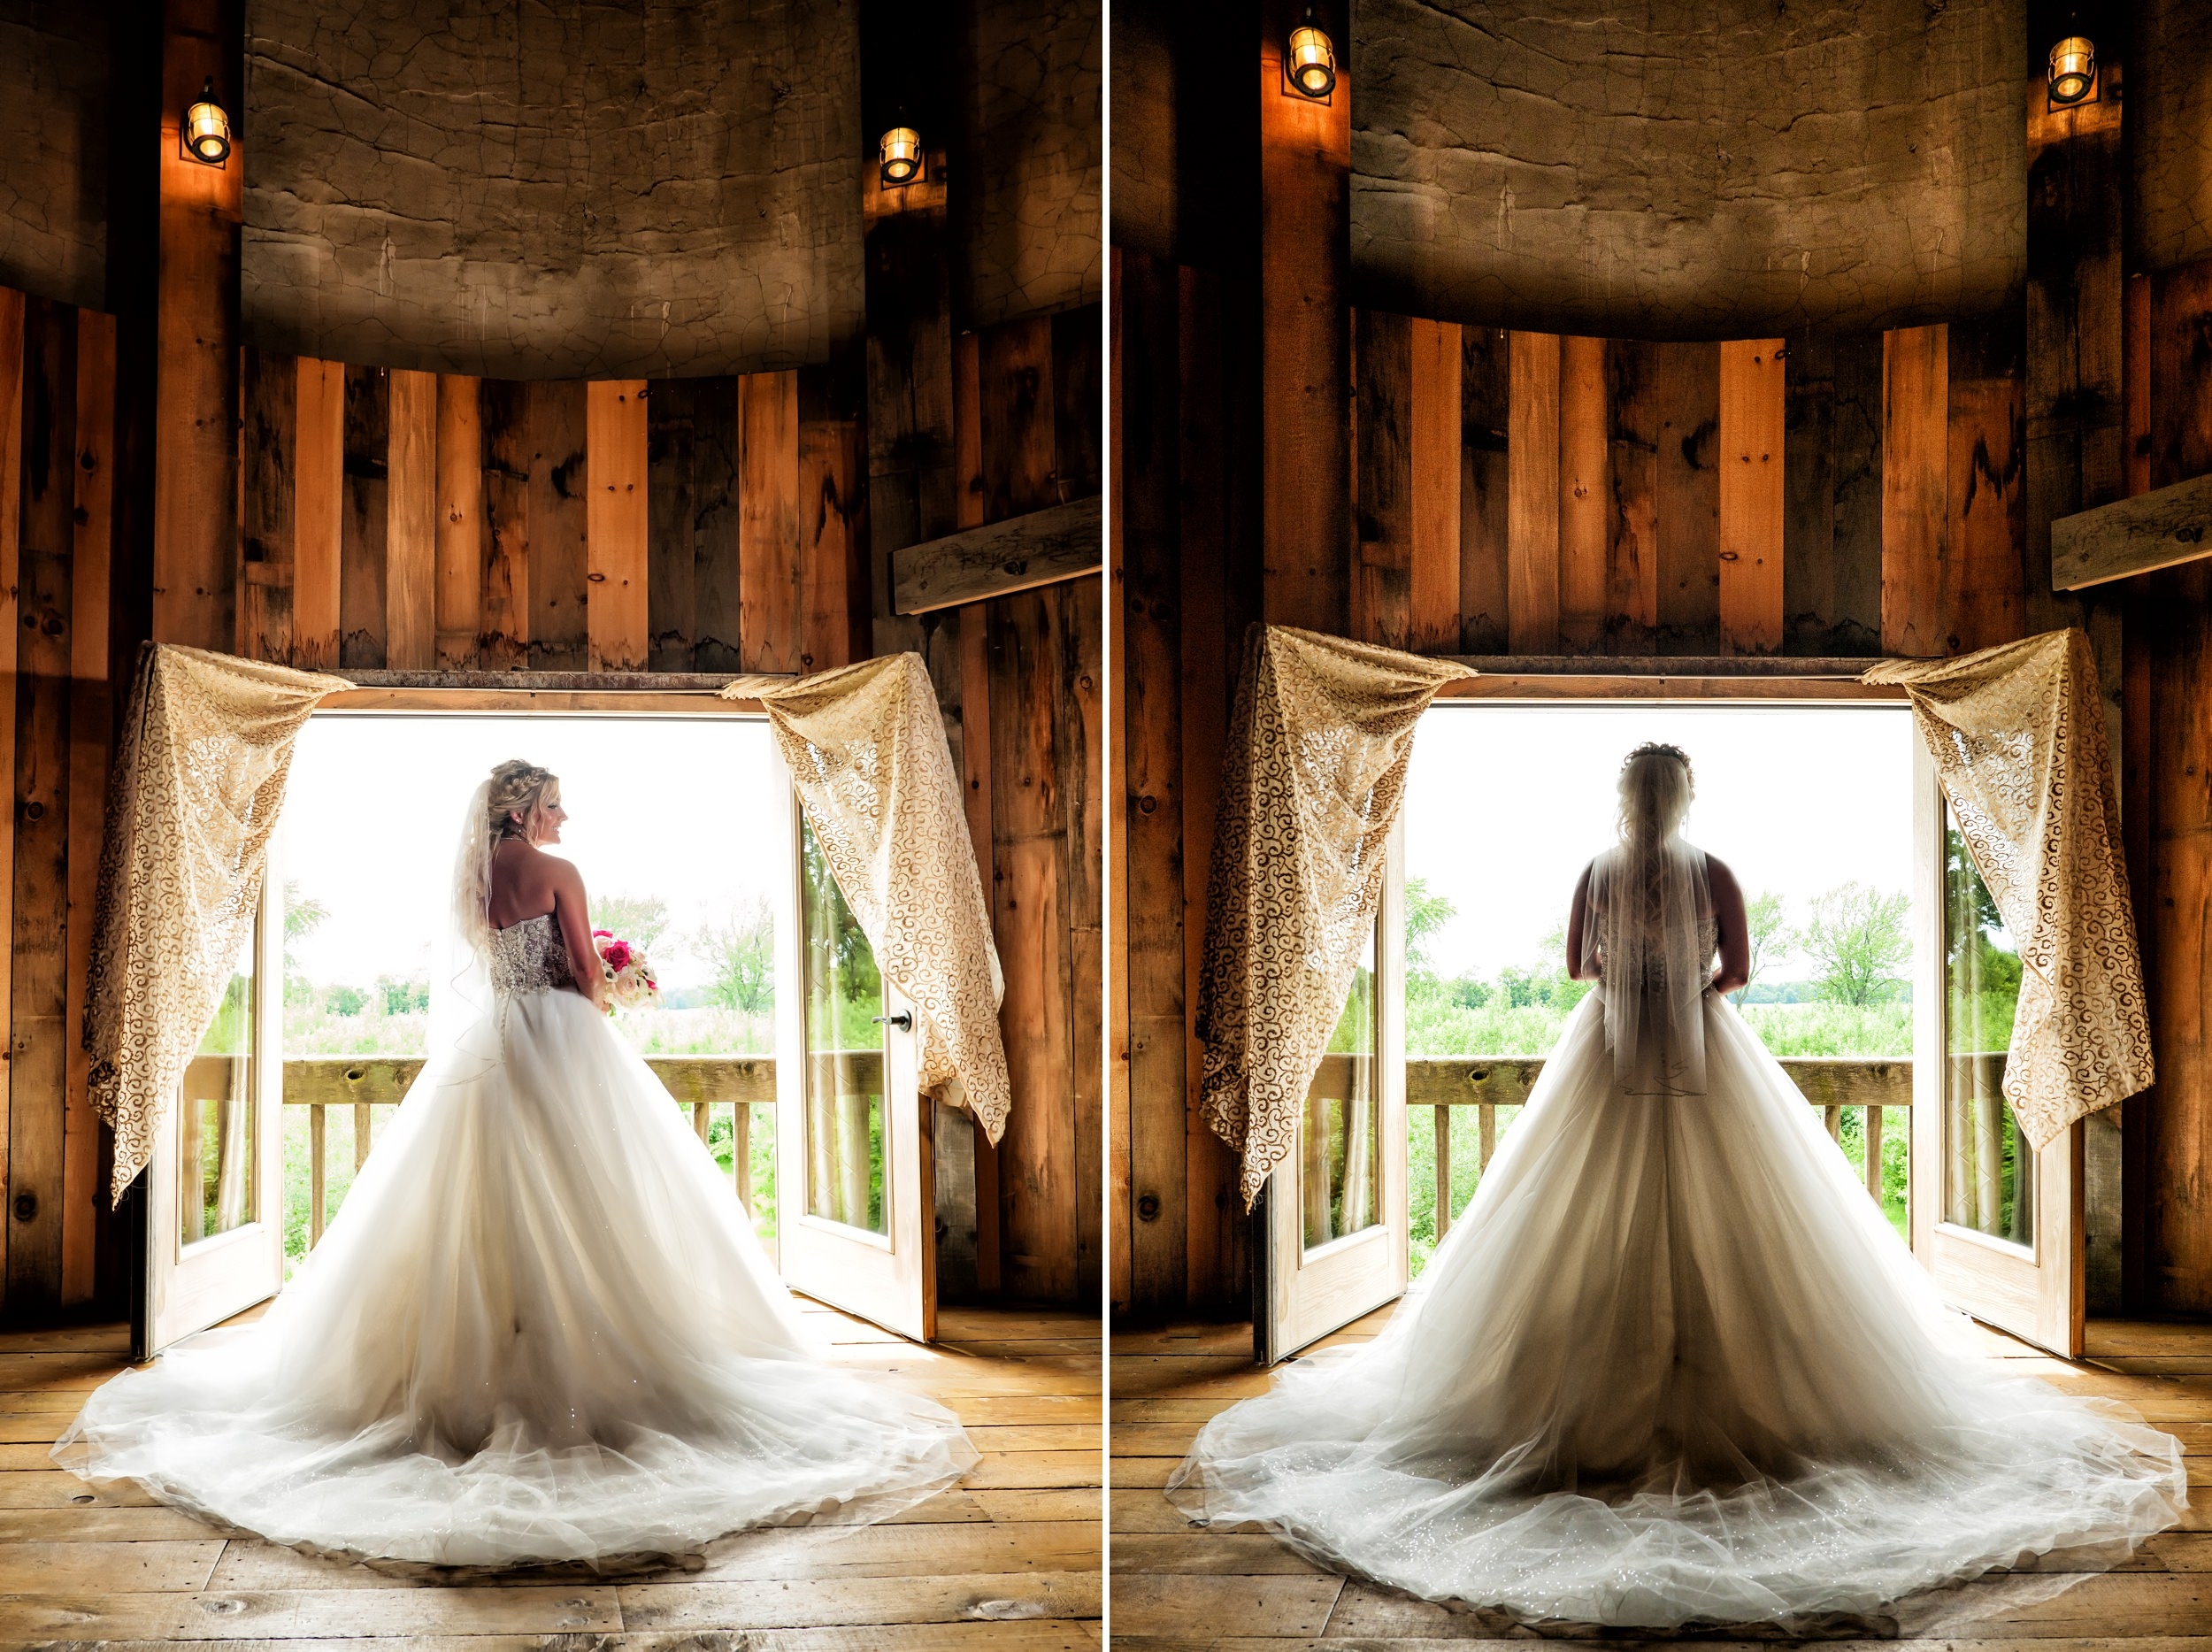 View of the back of the bride's dress at County Line Orchard bridal suite.